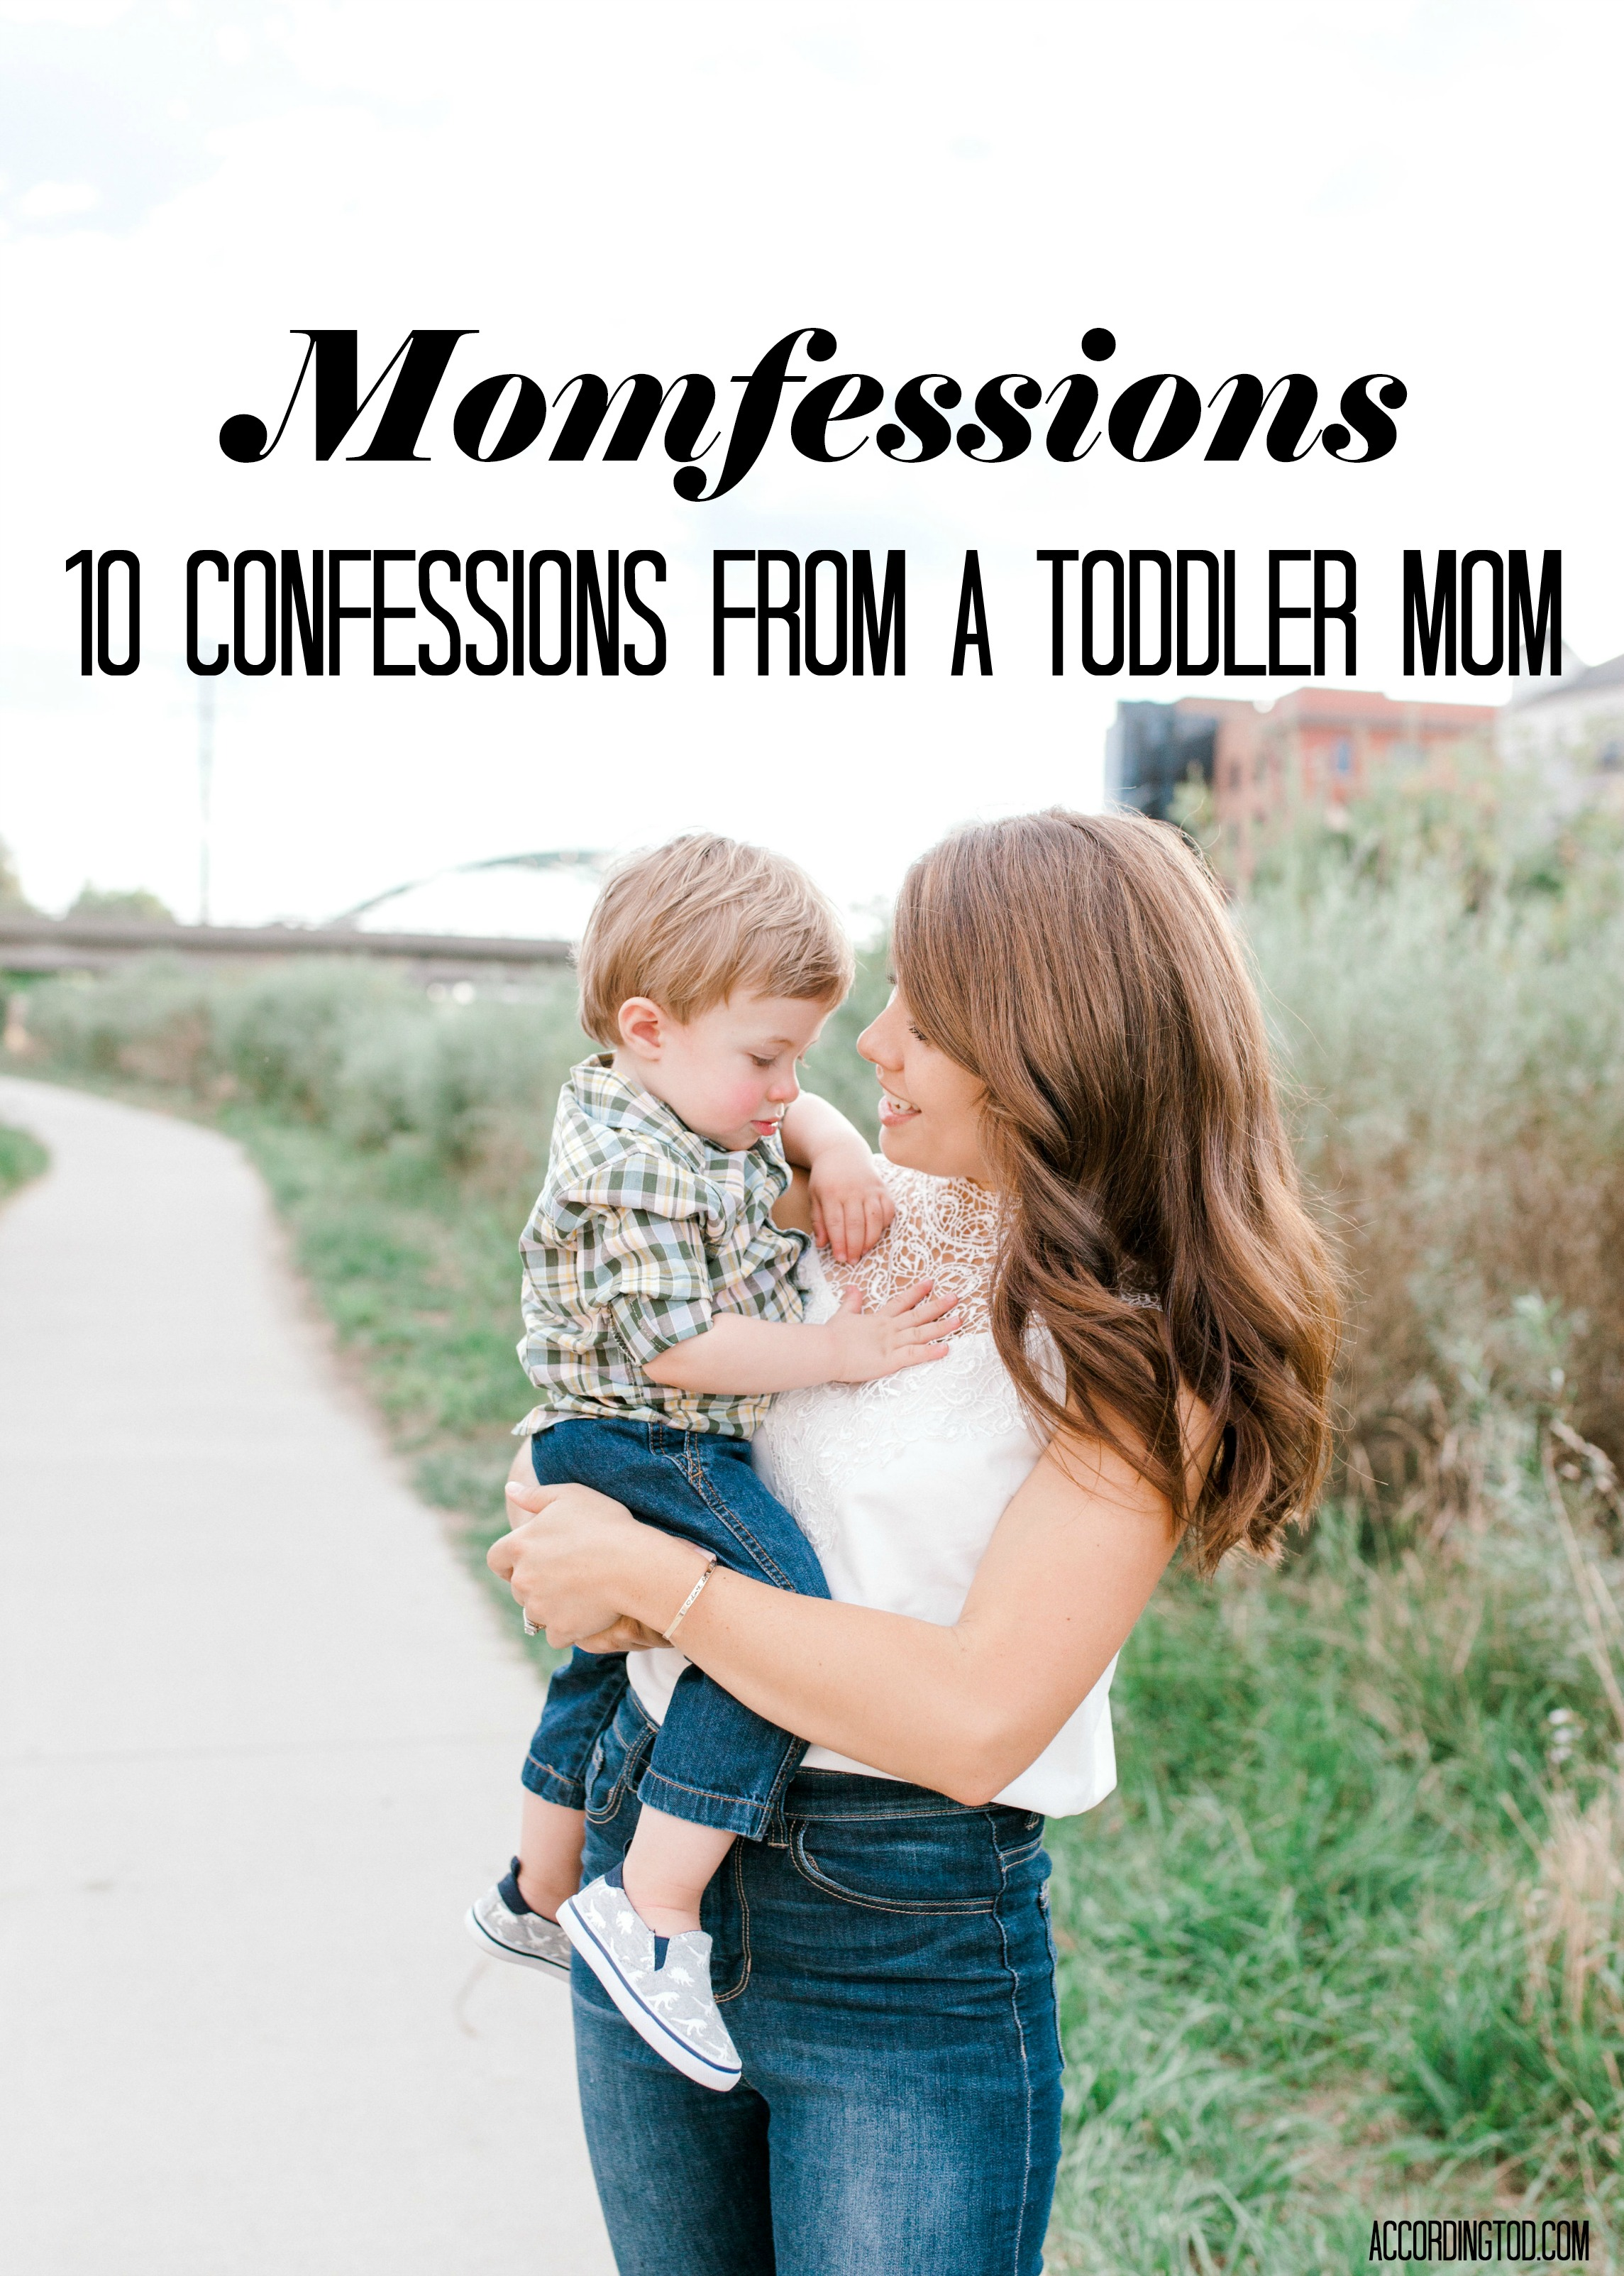 momfessions 10 confessions from a toddler mom.jpg